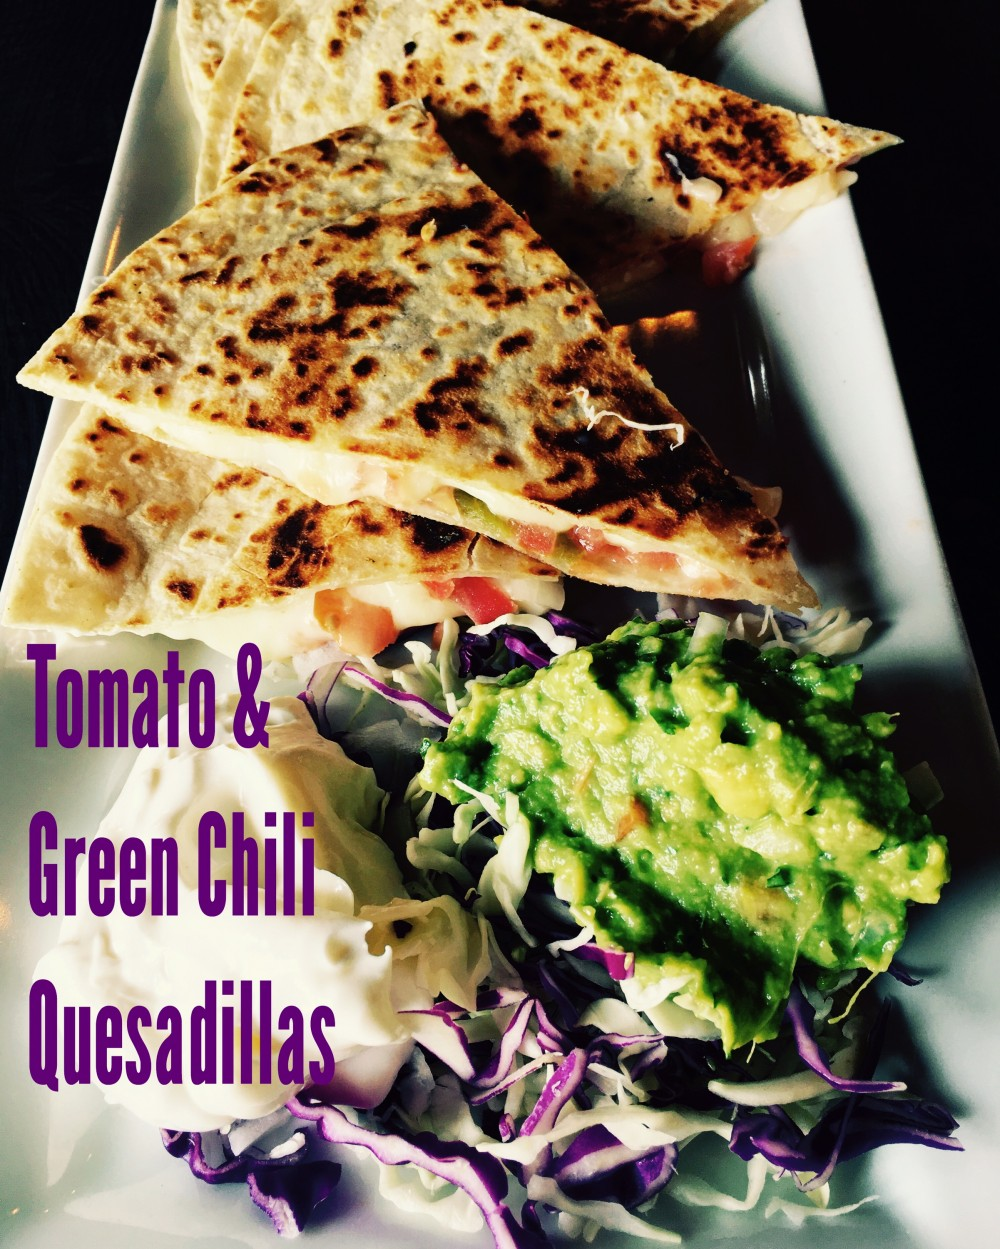 Travel Food Blog Posts 2016 7 6 Tomatoes >> Tomato & Green Chili Quesadillas by Blythe's Blog ...